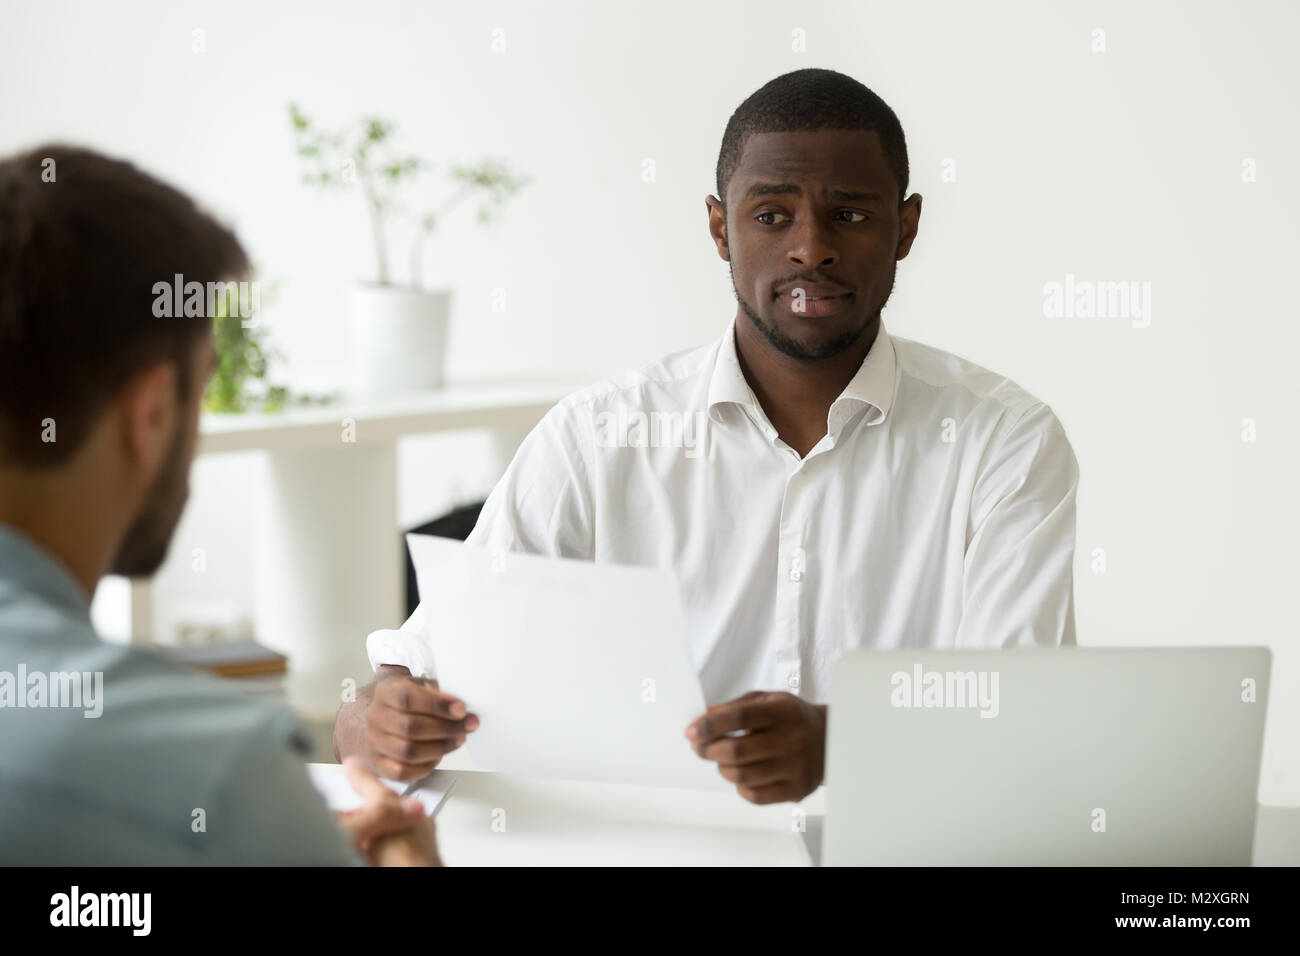 African american hr manager looking doubtful about hiring incompetent candidate, uncertain distrustful black employer - Stock Image